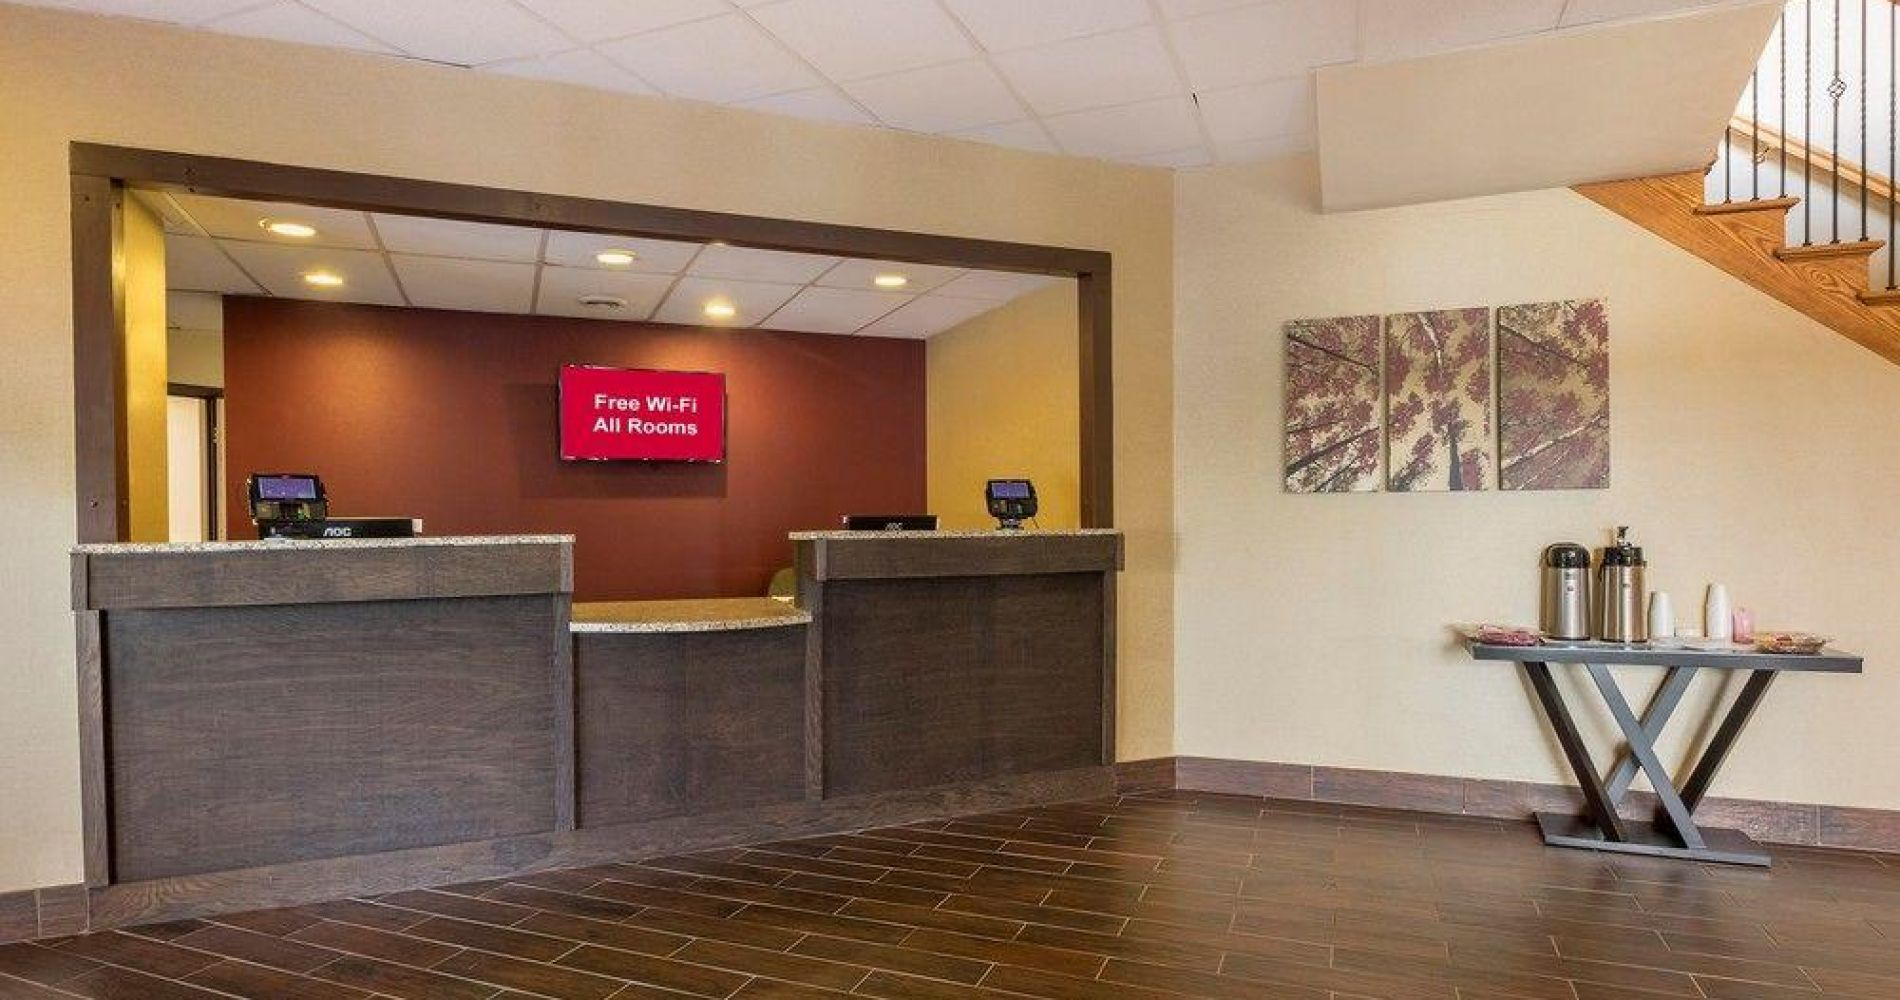 Red Roof Inn Williamsport Pa Best Hotels And Overnight